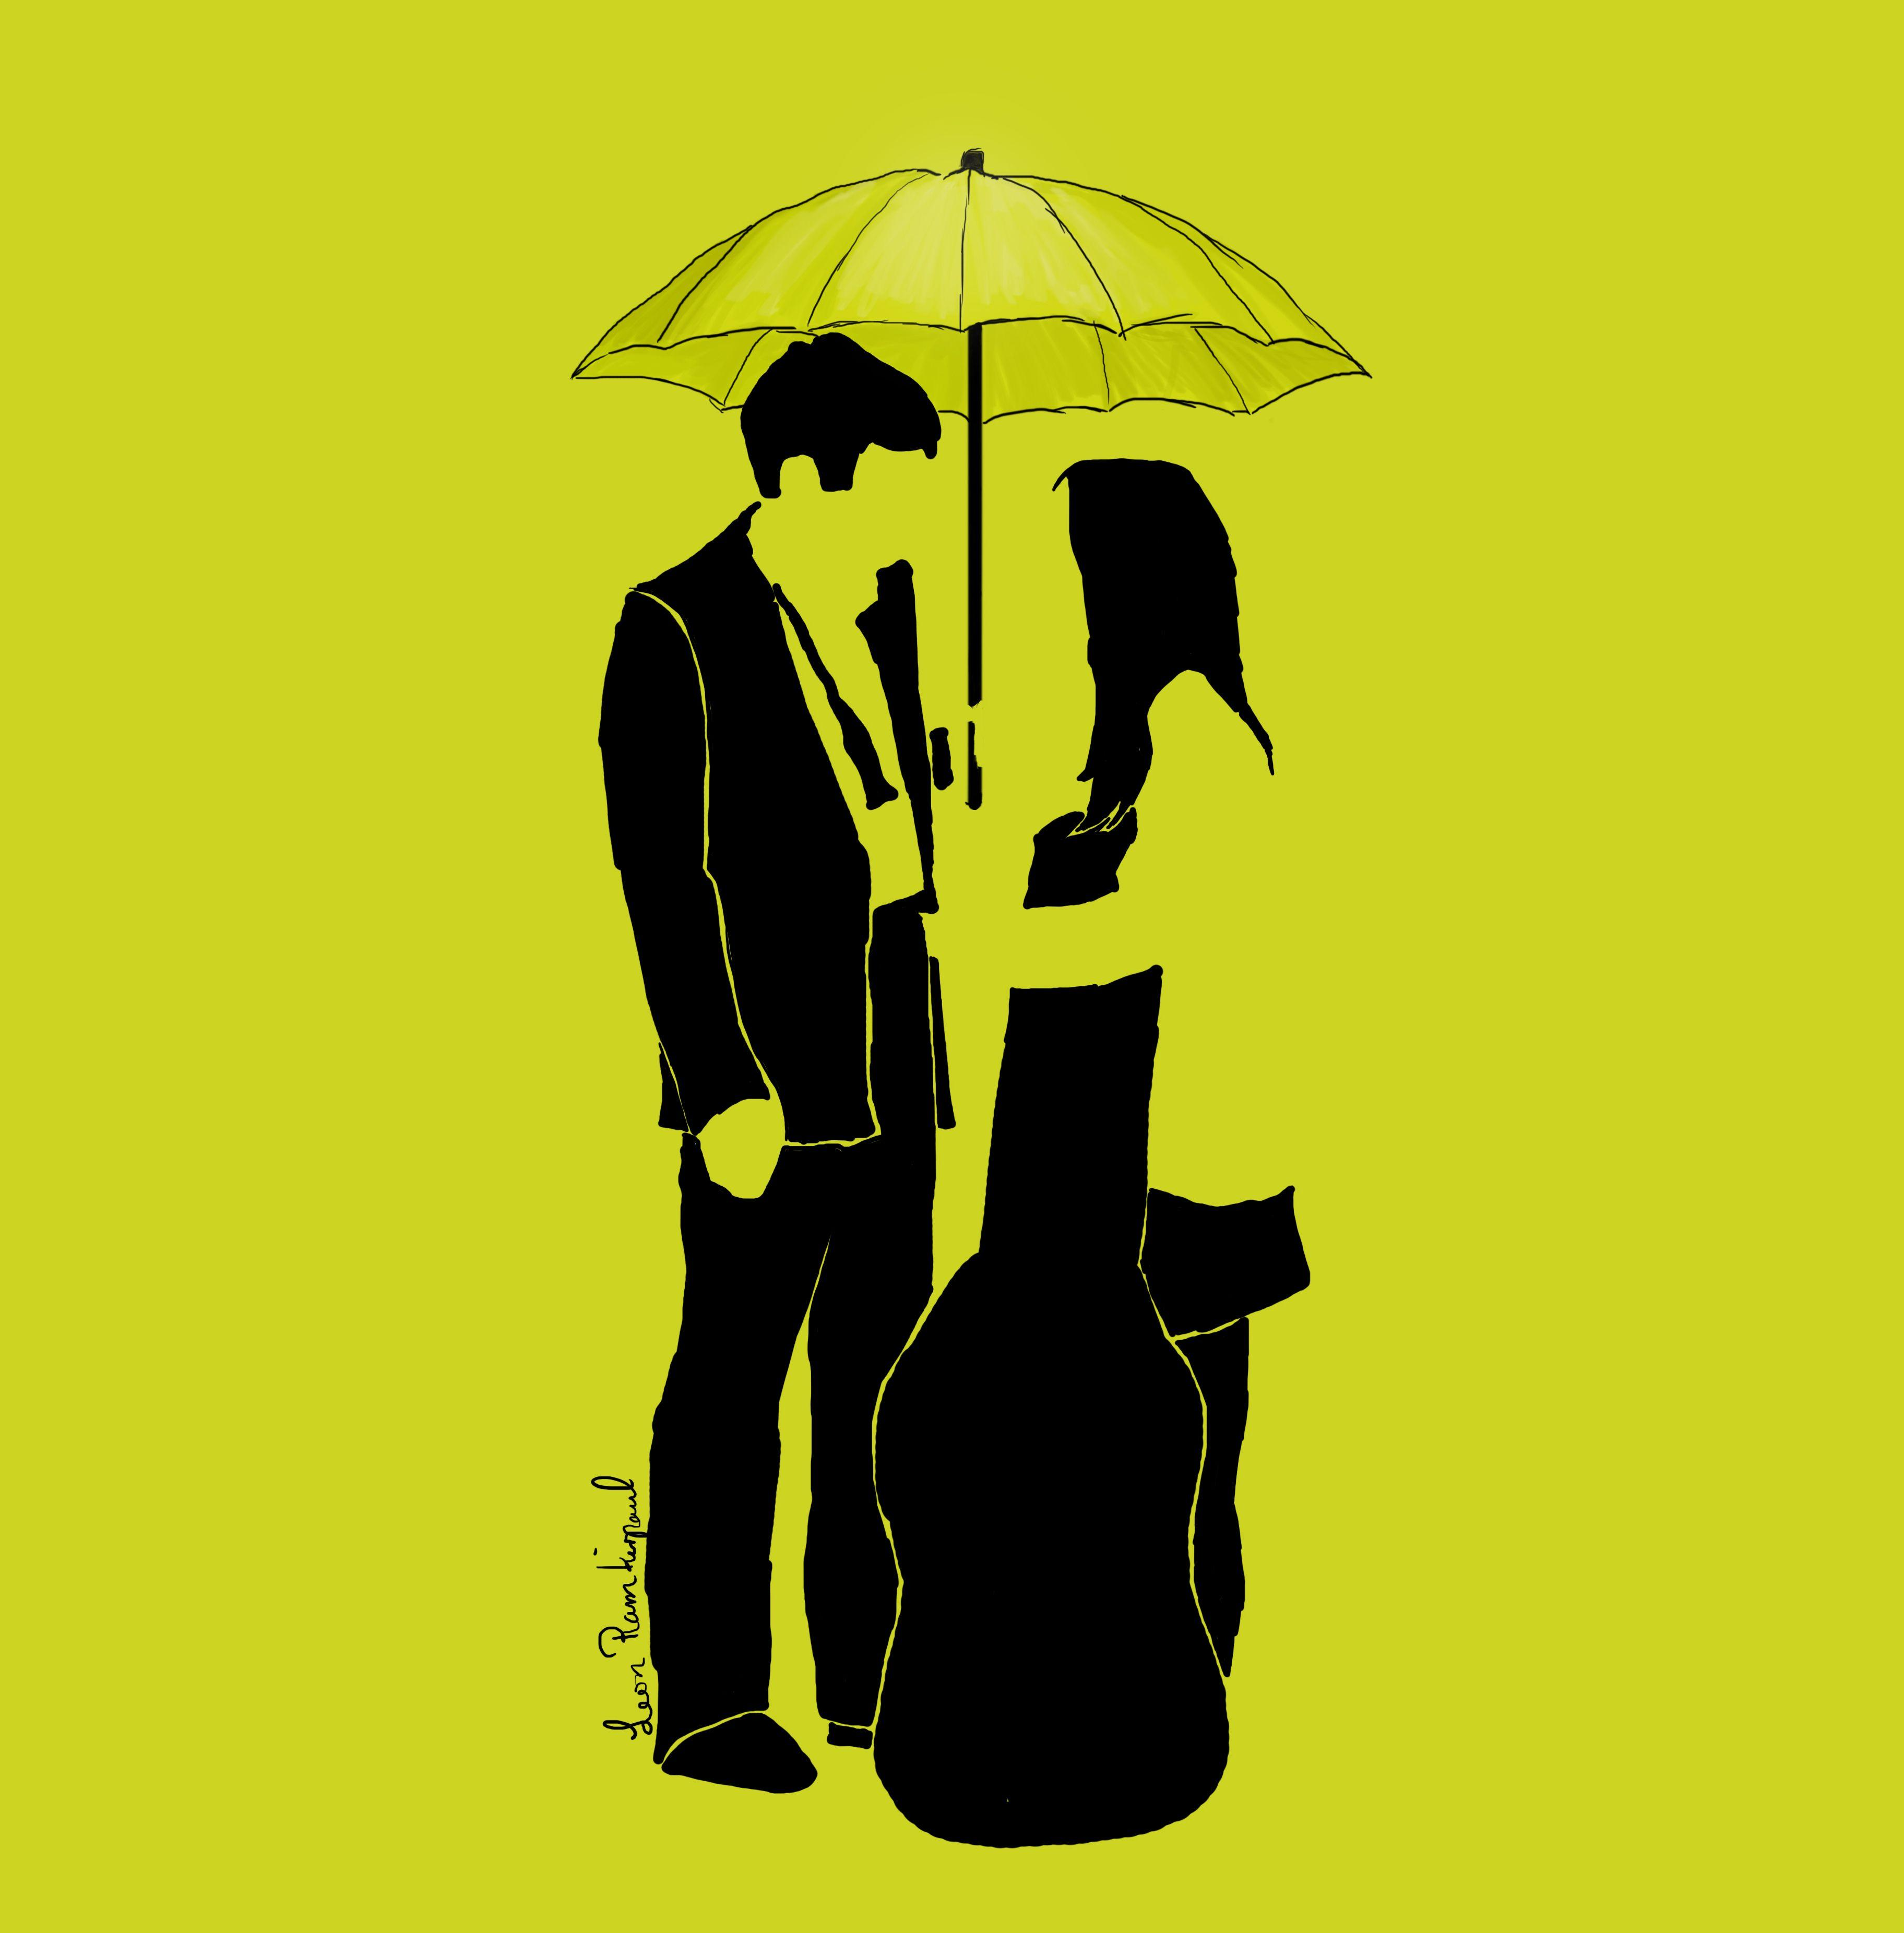 Free Download How I Met Your Mother Wallpapers 3648x3704 For Your Desktop Mobile Tablet Explore 95 How I Met Your Mother Wallpapers How I Met Your Mother Wallpapers I